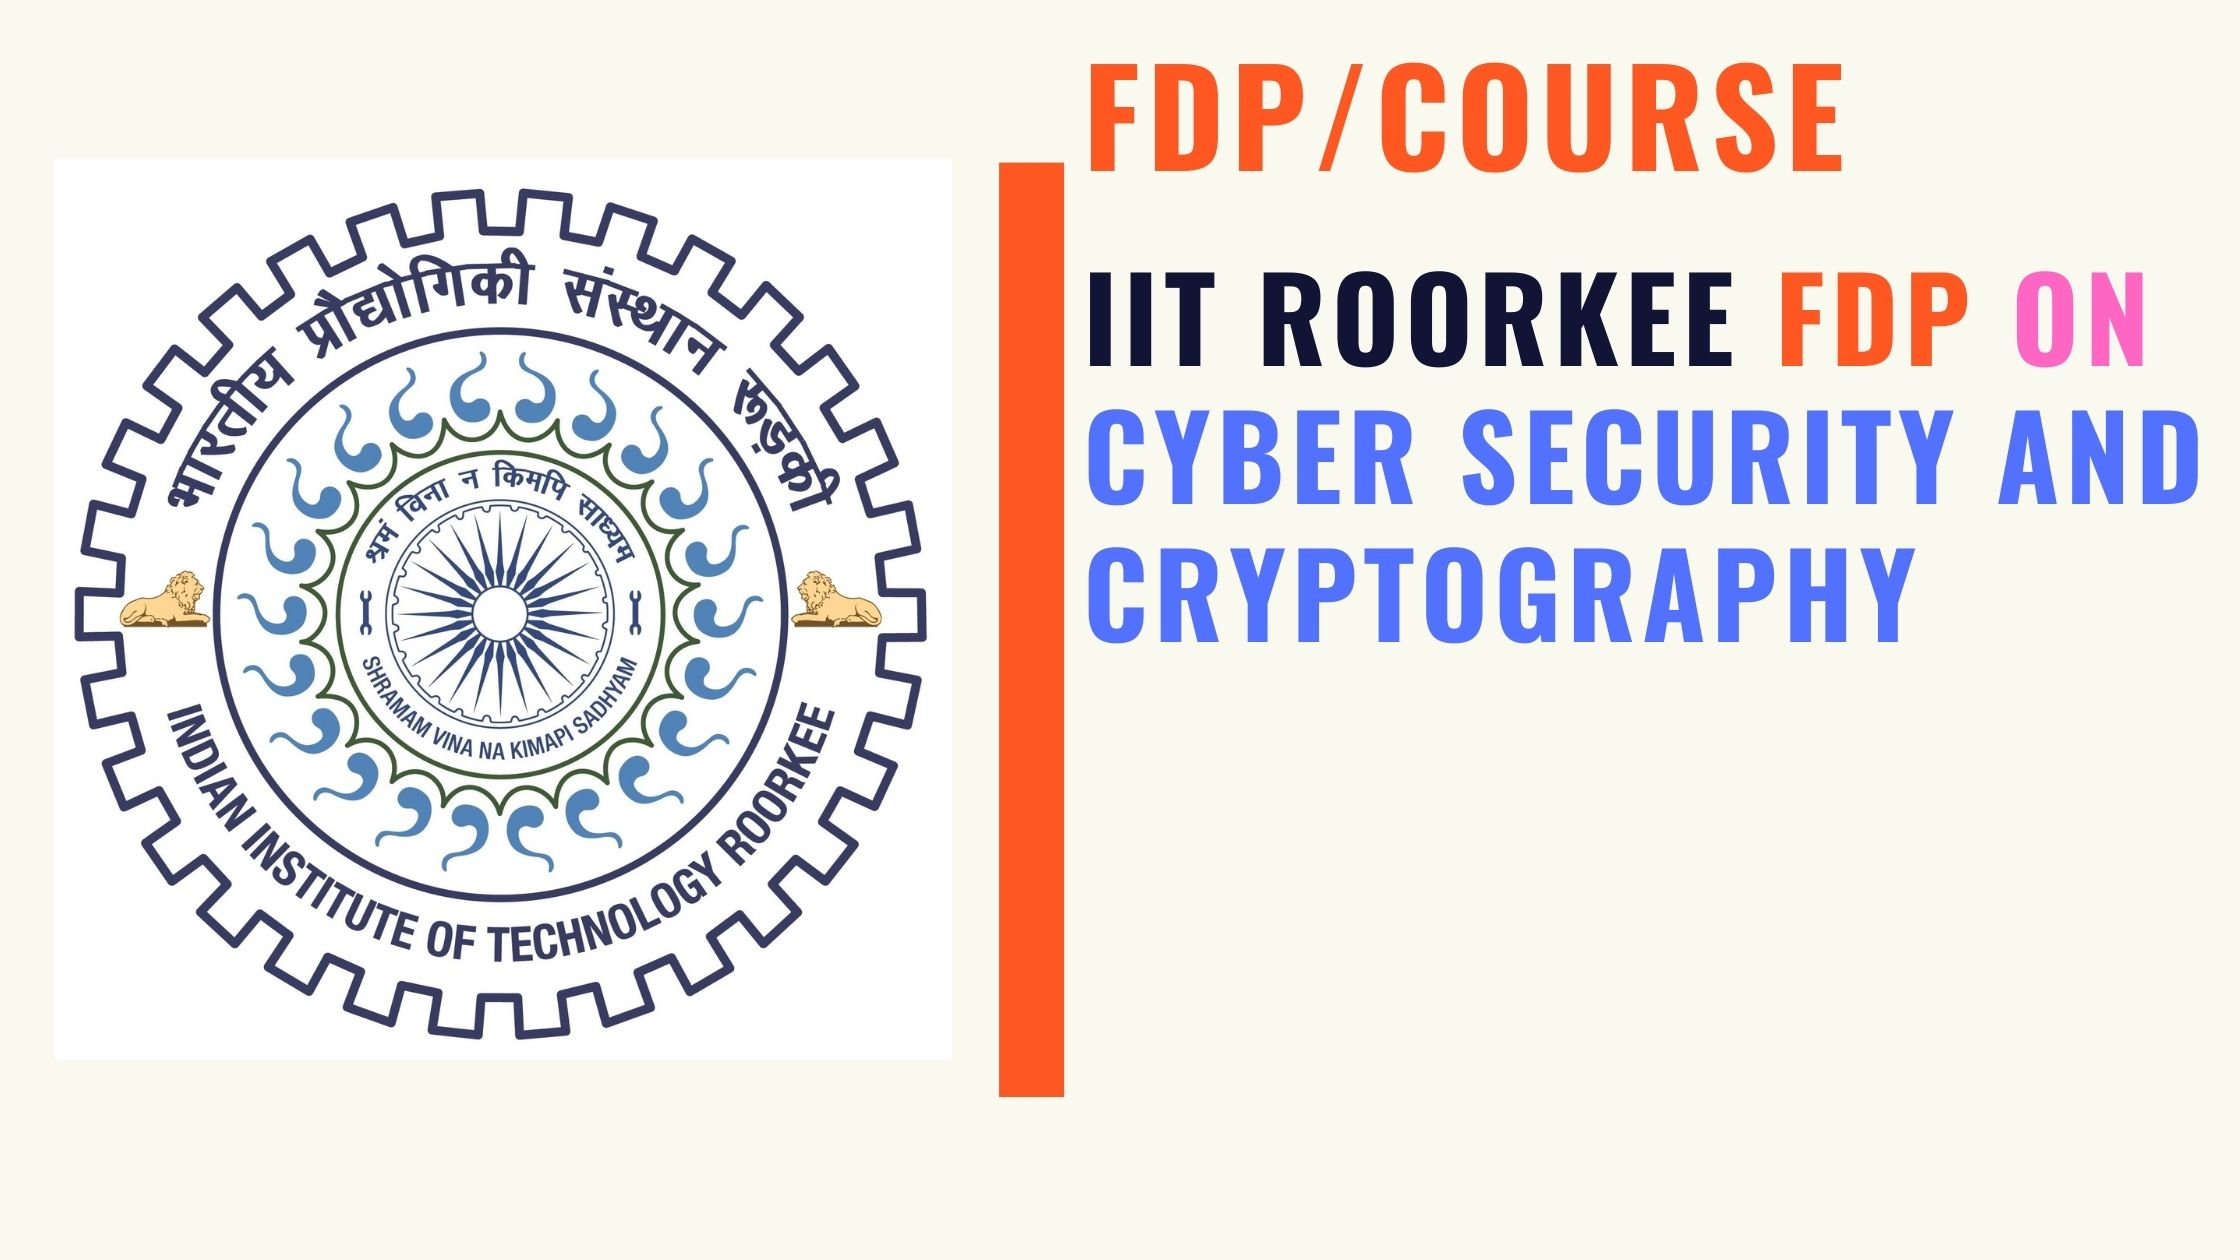 IIT Roorkee FDP Cyber Security and Cryptography Online Short Course 2020